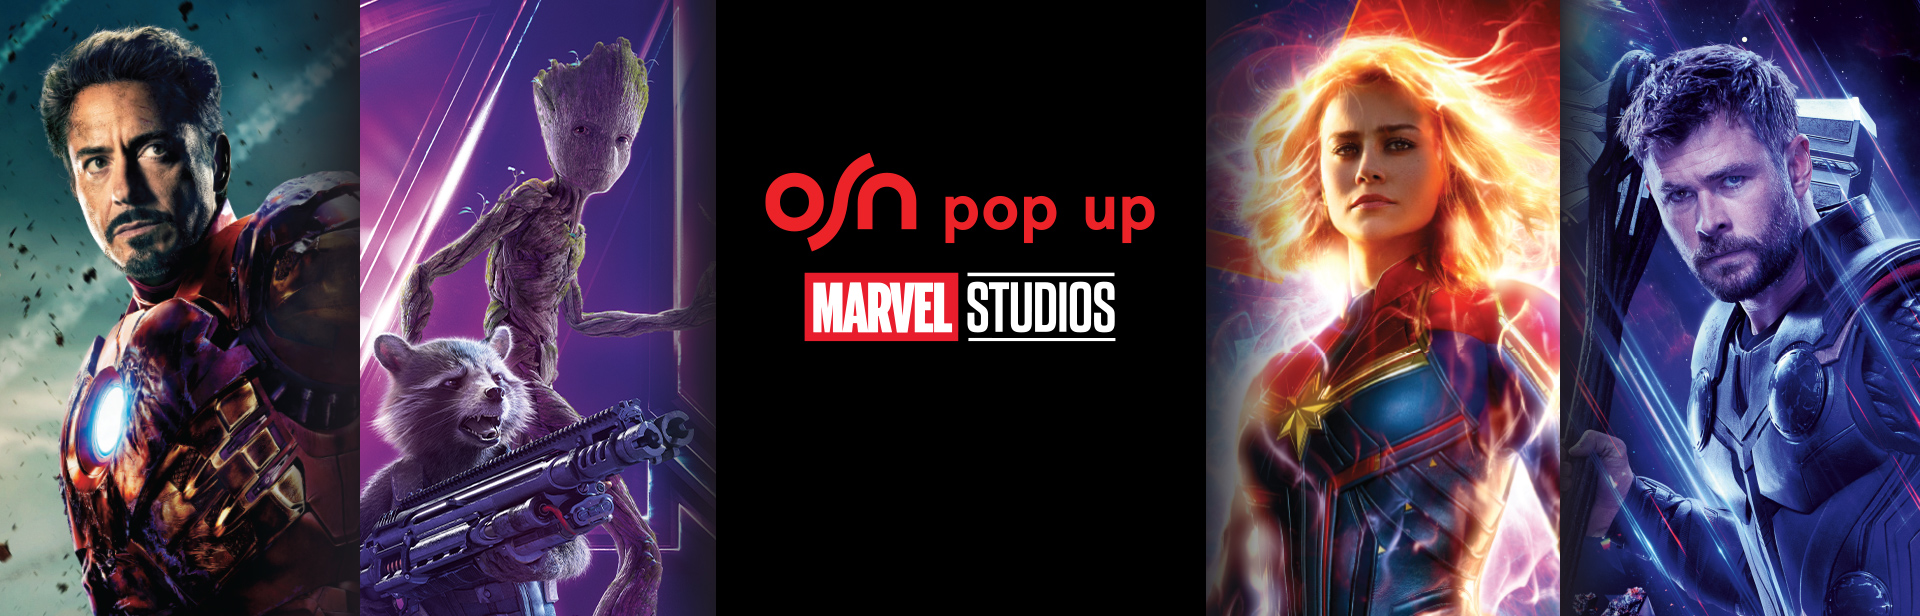 Marvel-ous Movies on OSN Pop Up